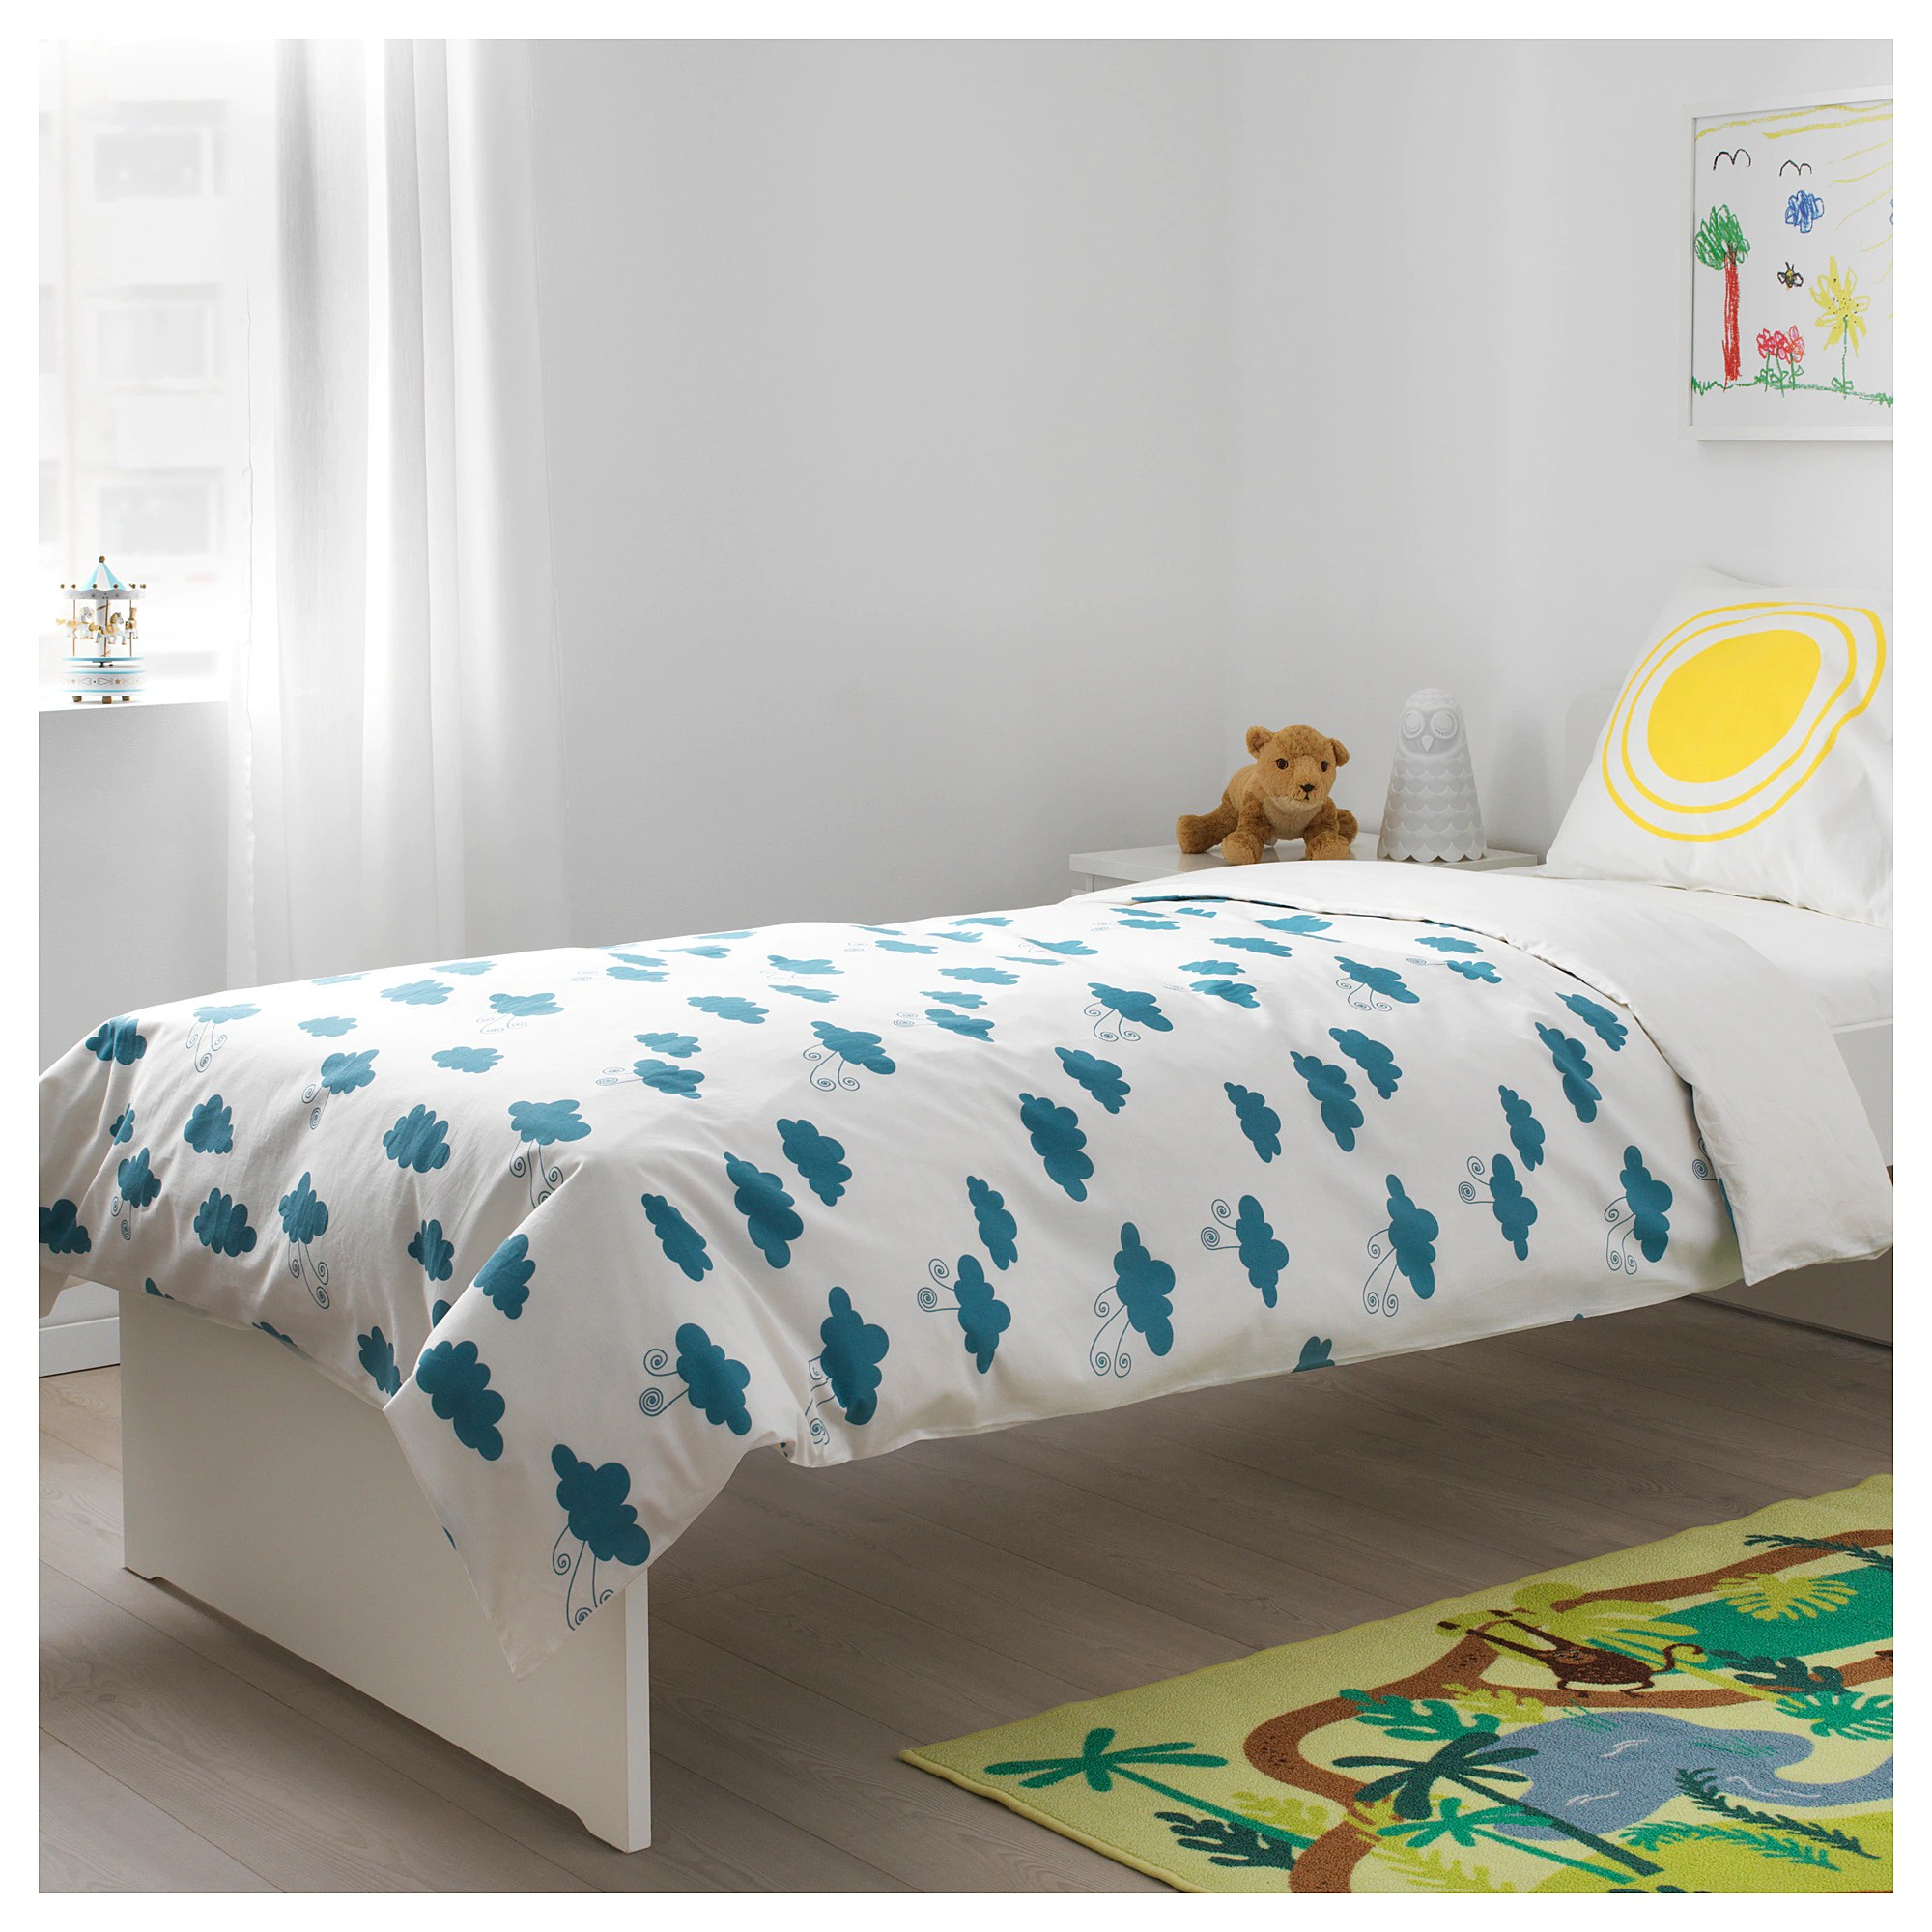 Habitat Bettwäsche Djungelskog Quilt Cover And Pillowcase Animal Cloud